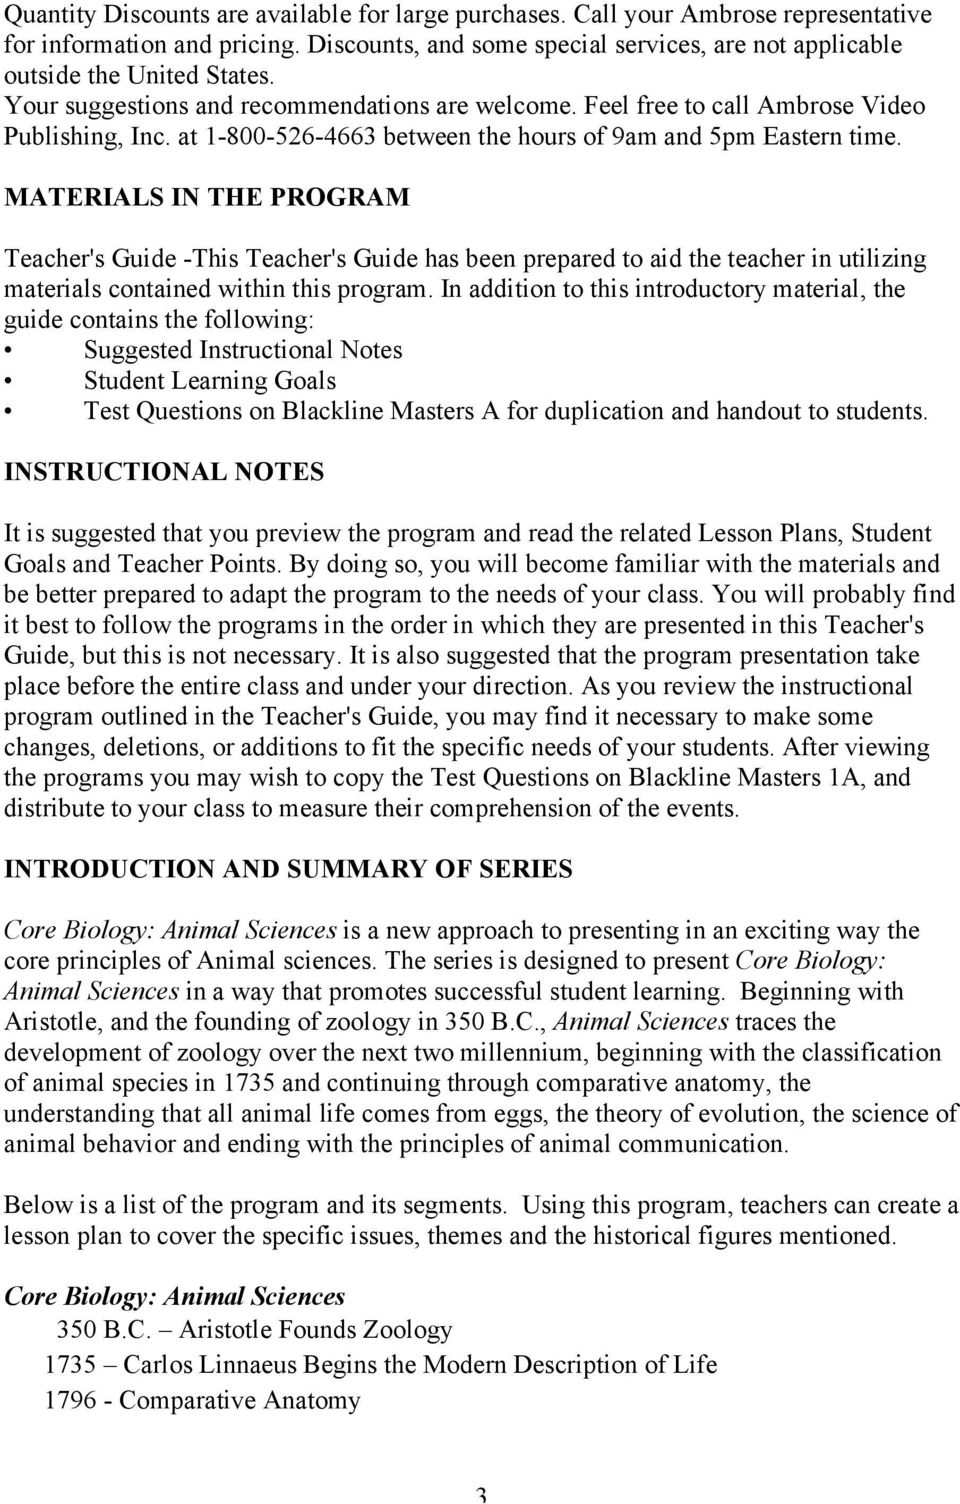 MATERIALS IN THE PROGRAM Teacher's Guide -This Teacher's Guide has been prepared to aid the teacher in utilizing materials contained within this program.